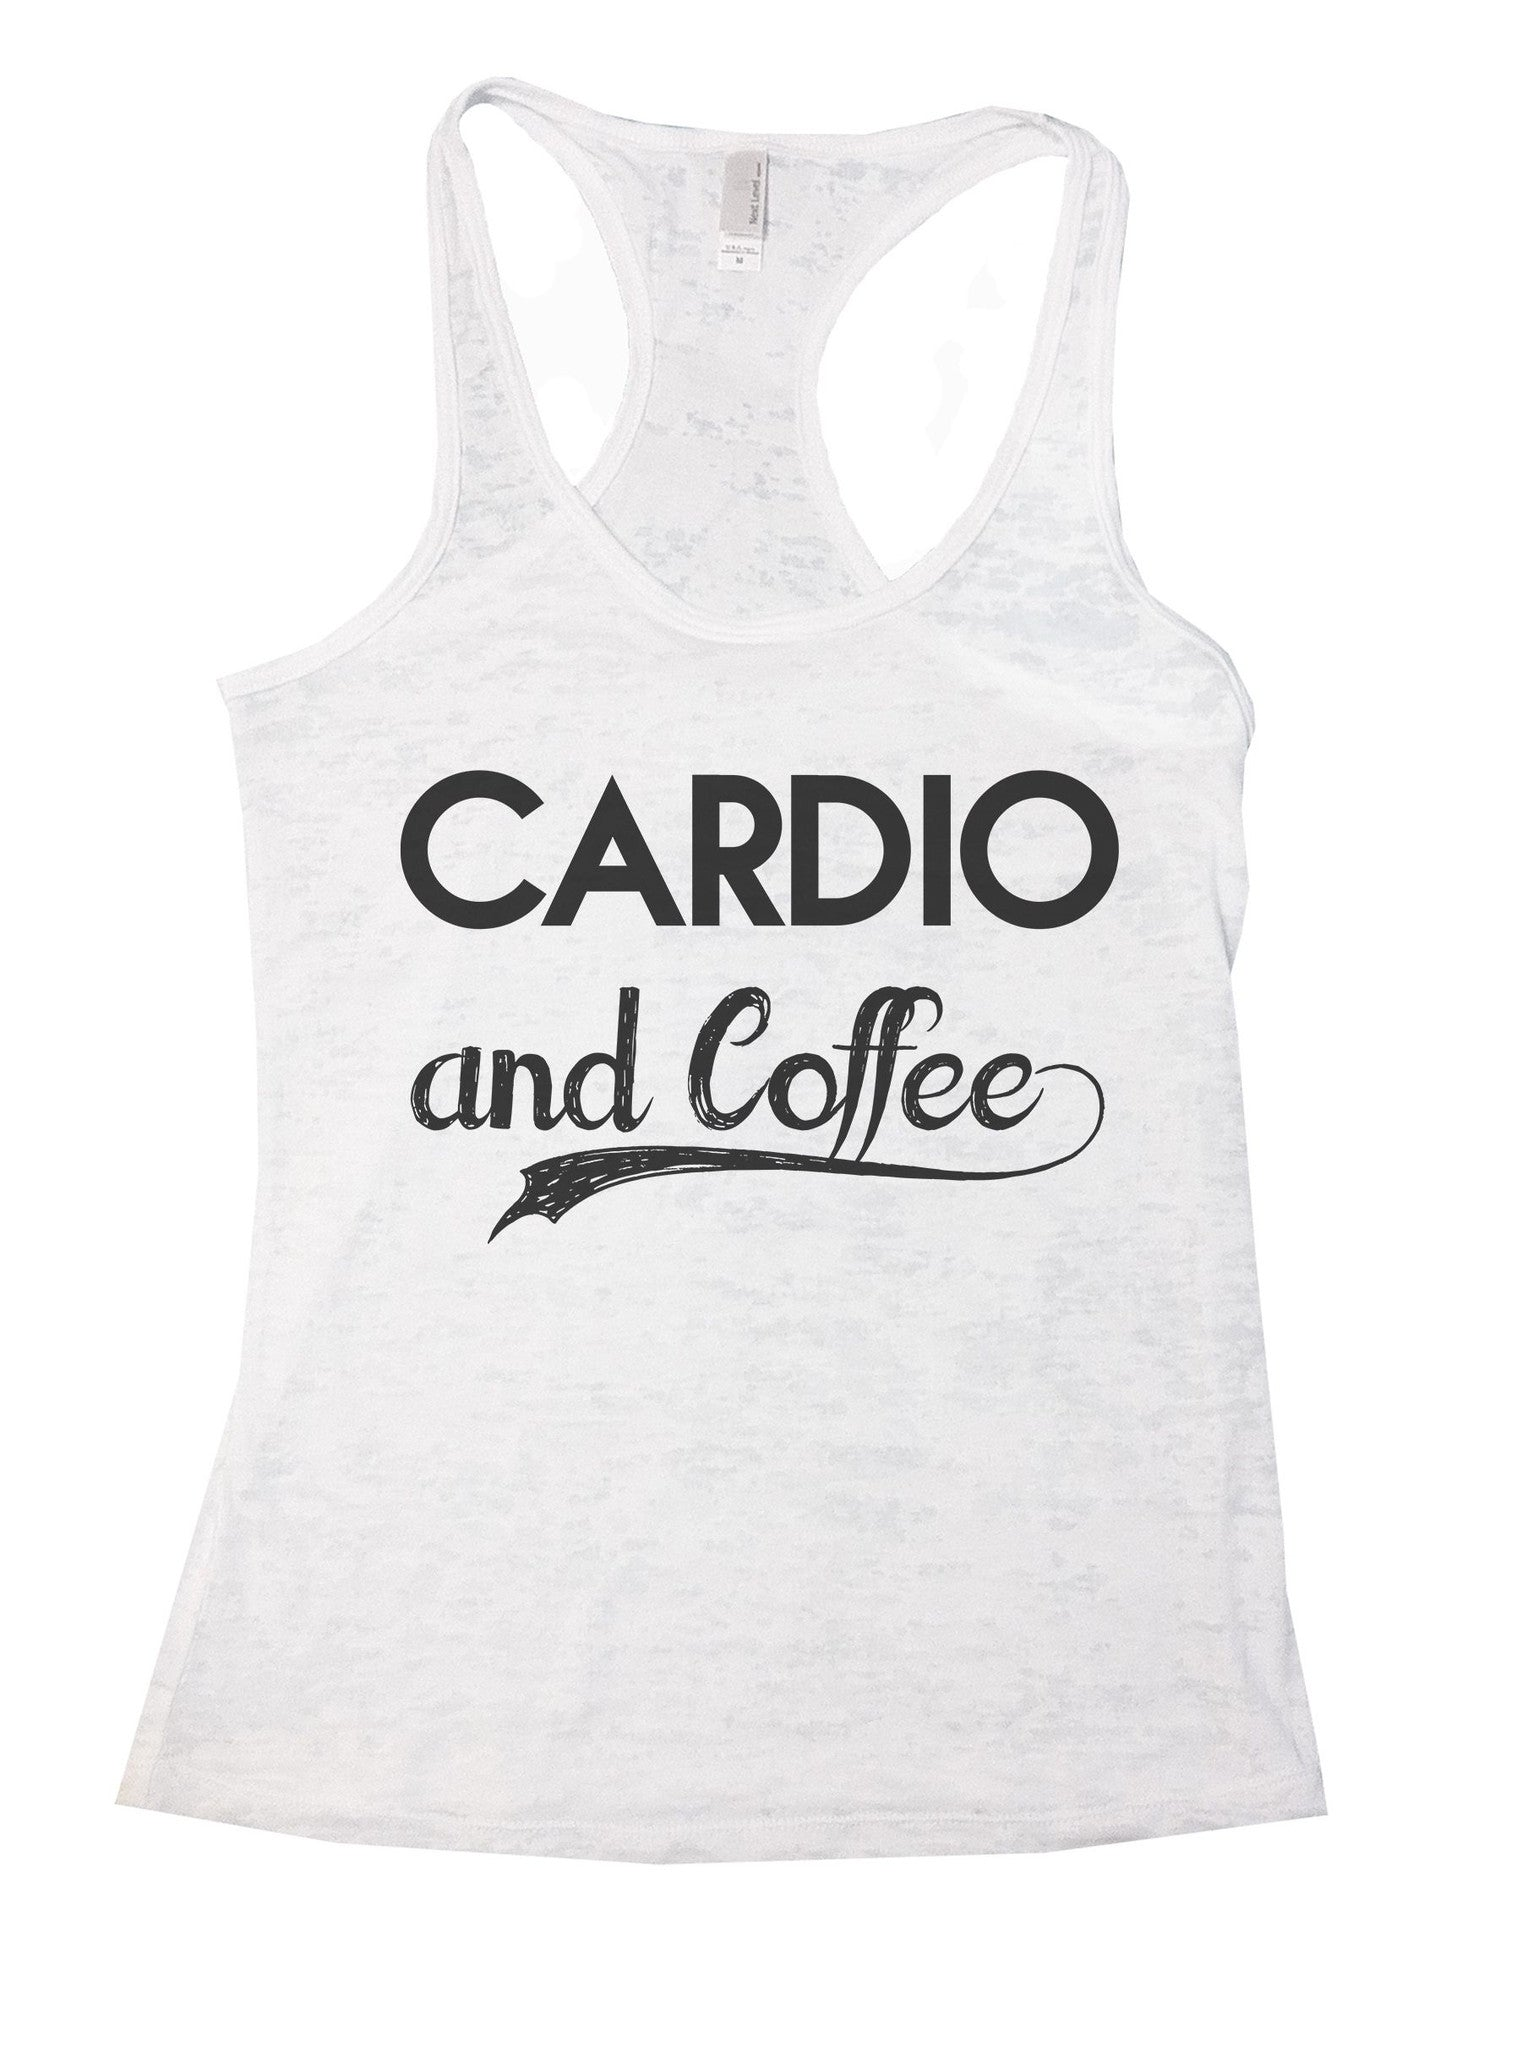 Cardio And Coffee Burnout Tank Top By BurnoutTankTops.com - 797 - Funny Shirts Tank Tops Burnouts and Triblends  - 6